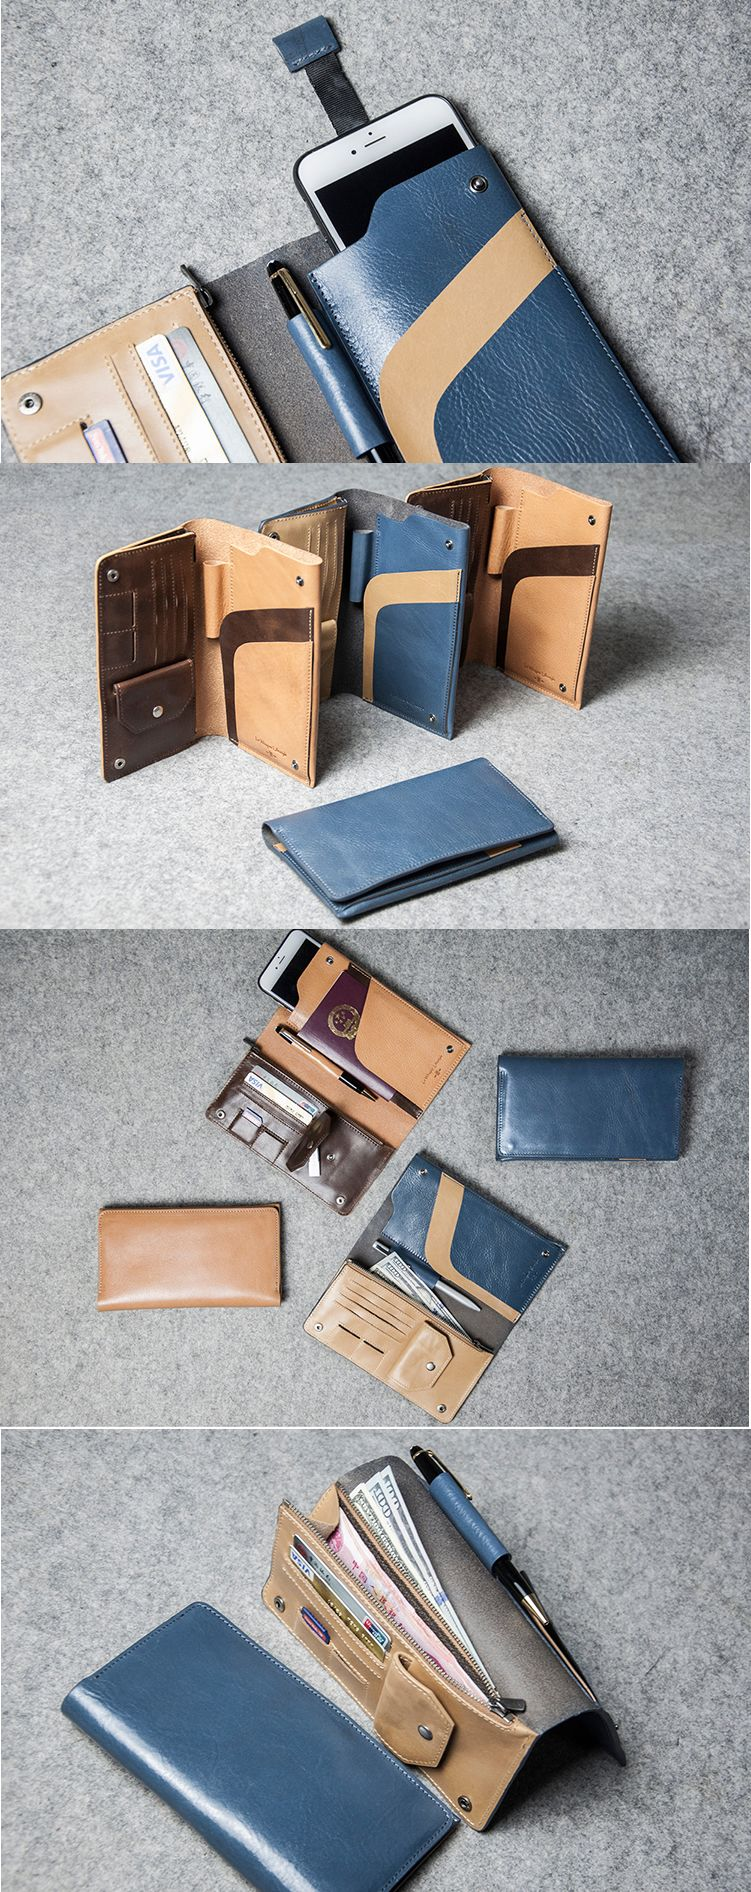 Multi functional travel genuine leather wallet business portfolio multi functional travel genuine leather wallet business portfolio bag professional organizer phone iphone cell phone case colourmoves